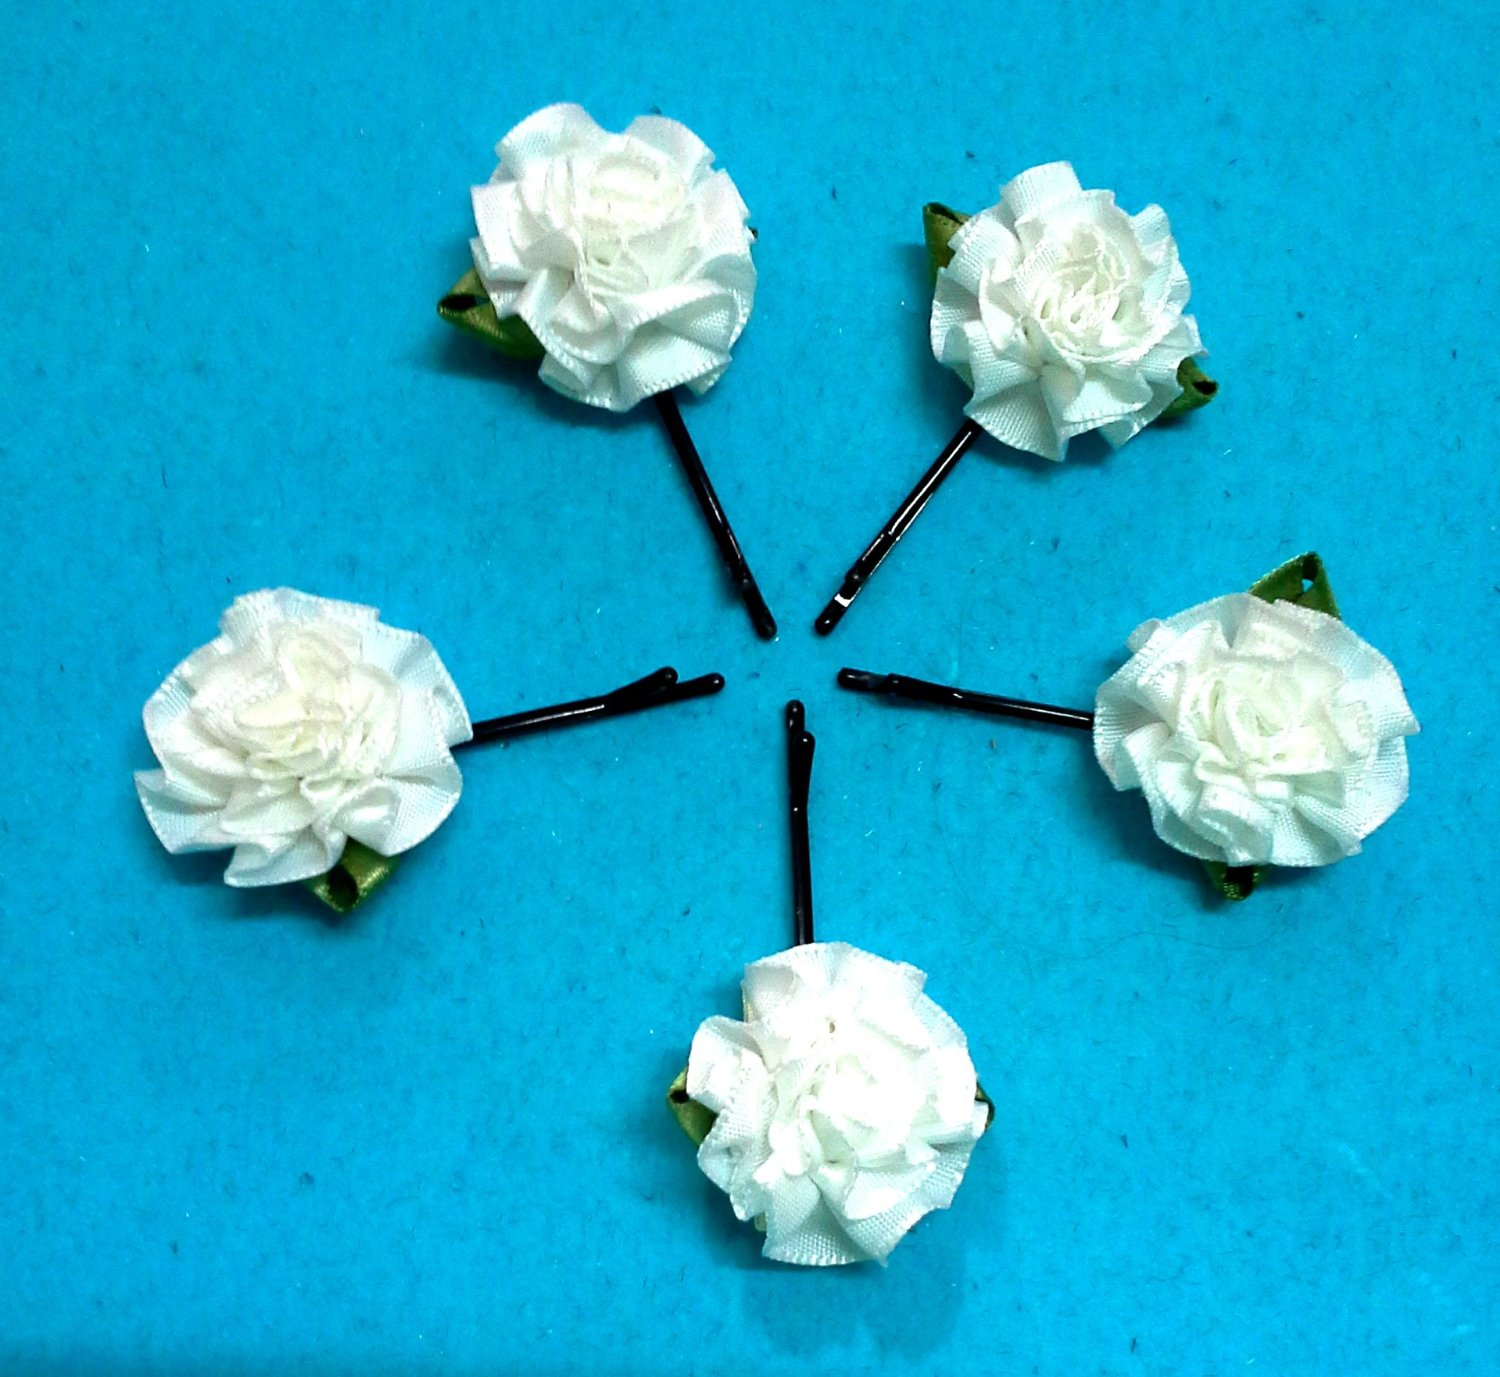 Cheap diy ribbon flower find diy ribbon flower deals on line at get quotations hair black clip craft cabbage white rose ribbon flower appliques wedding diy mightylinksfo